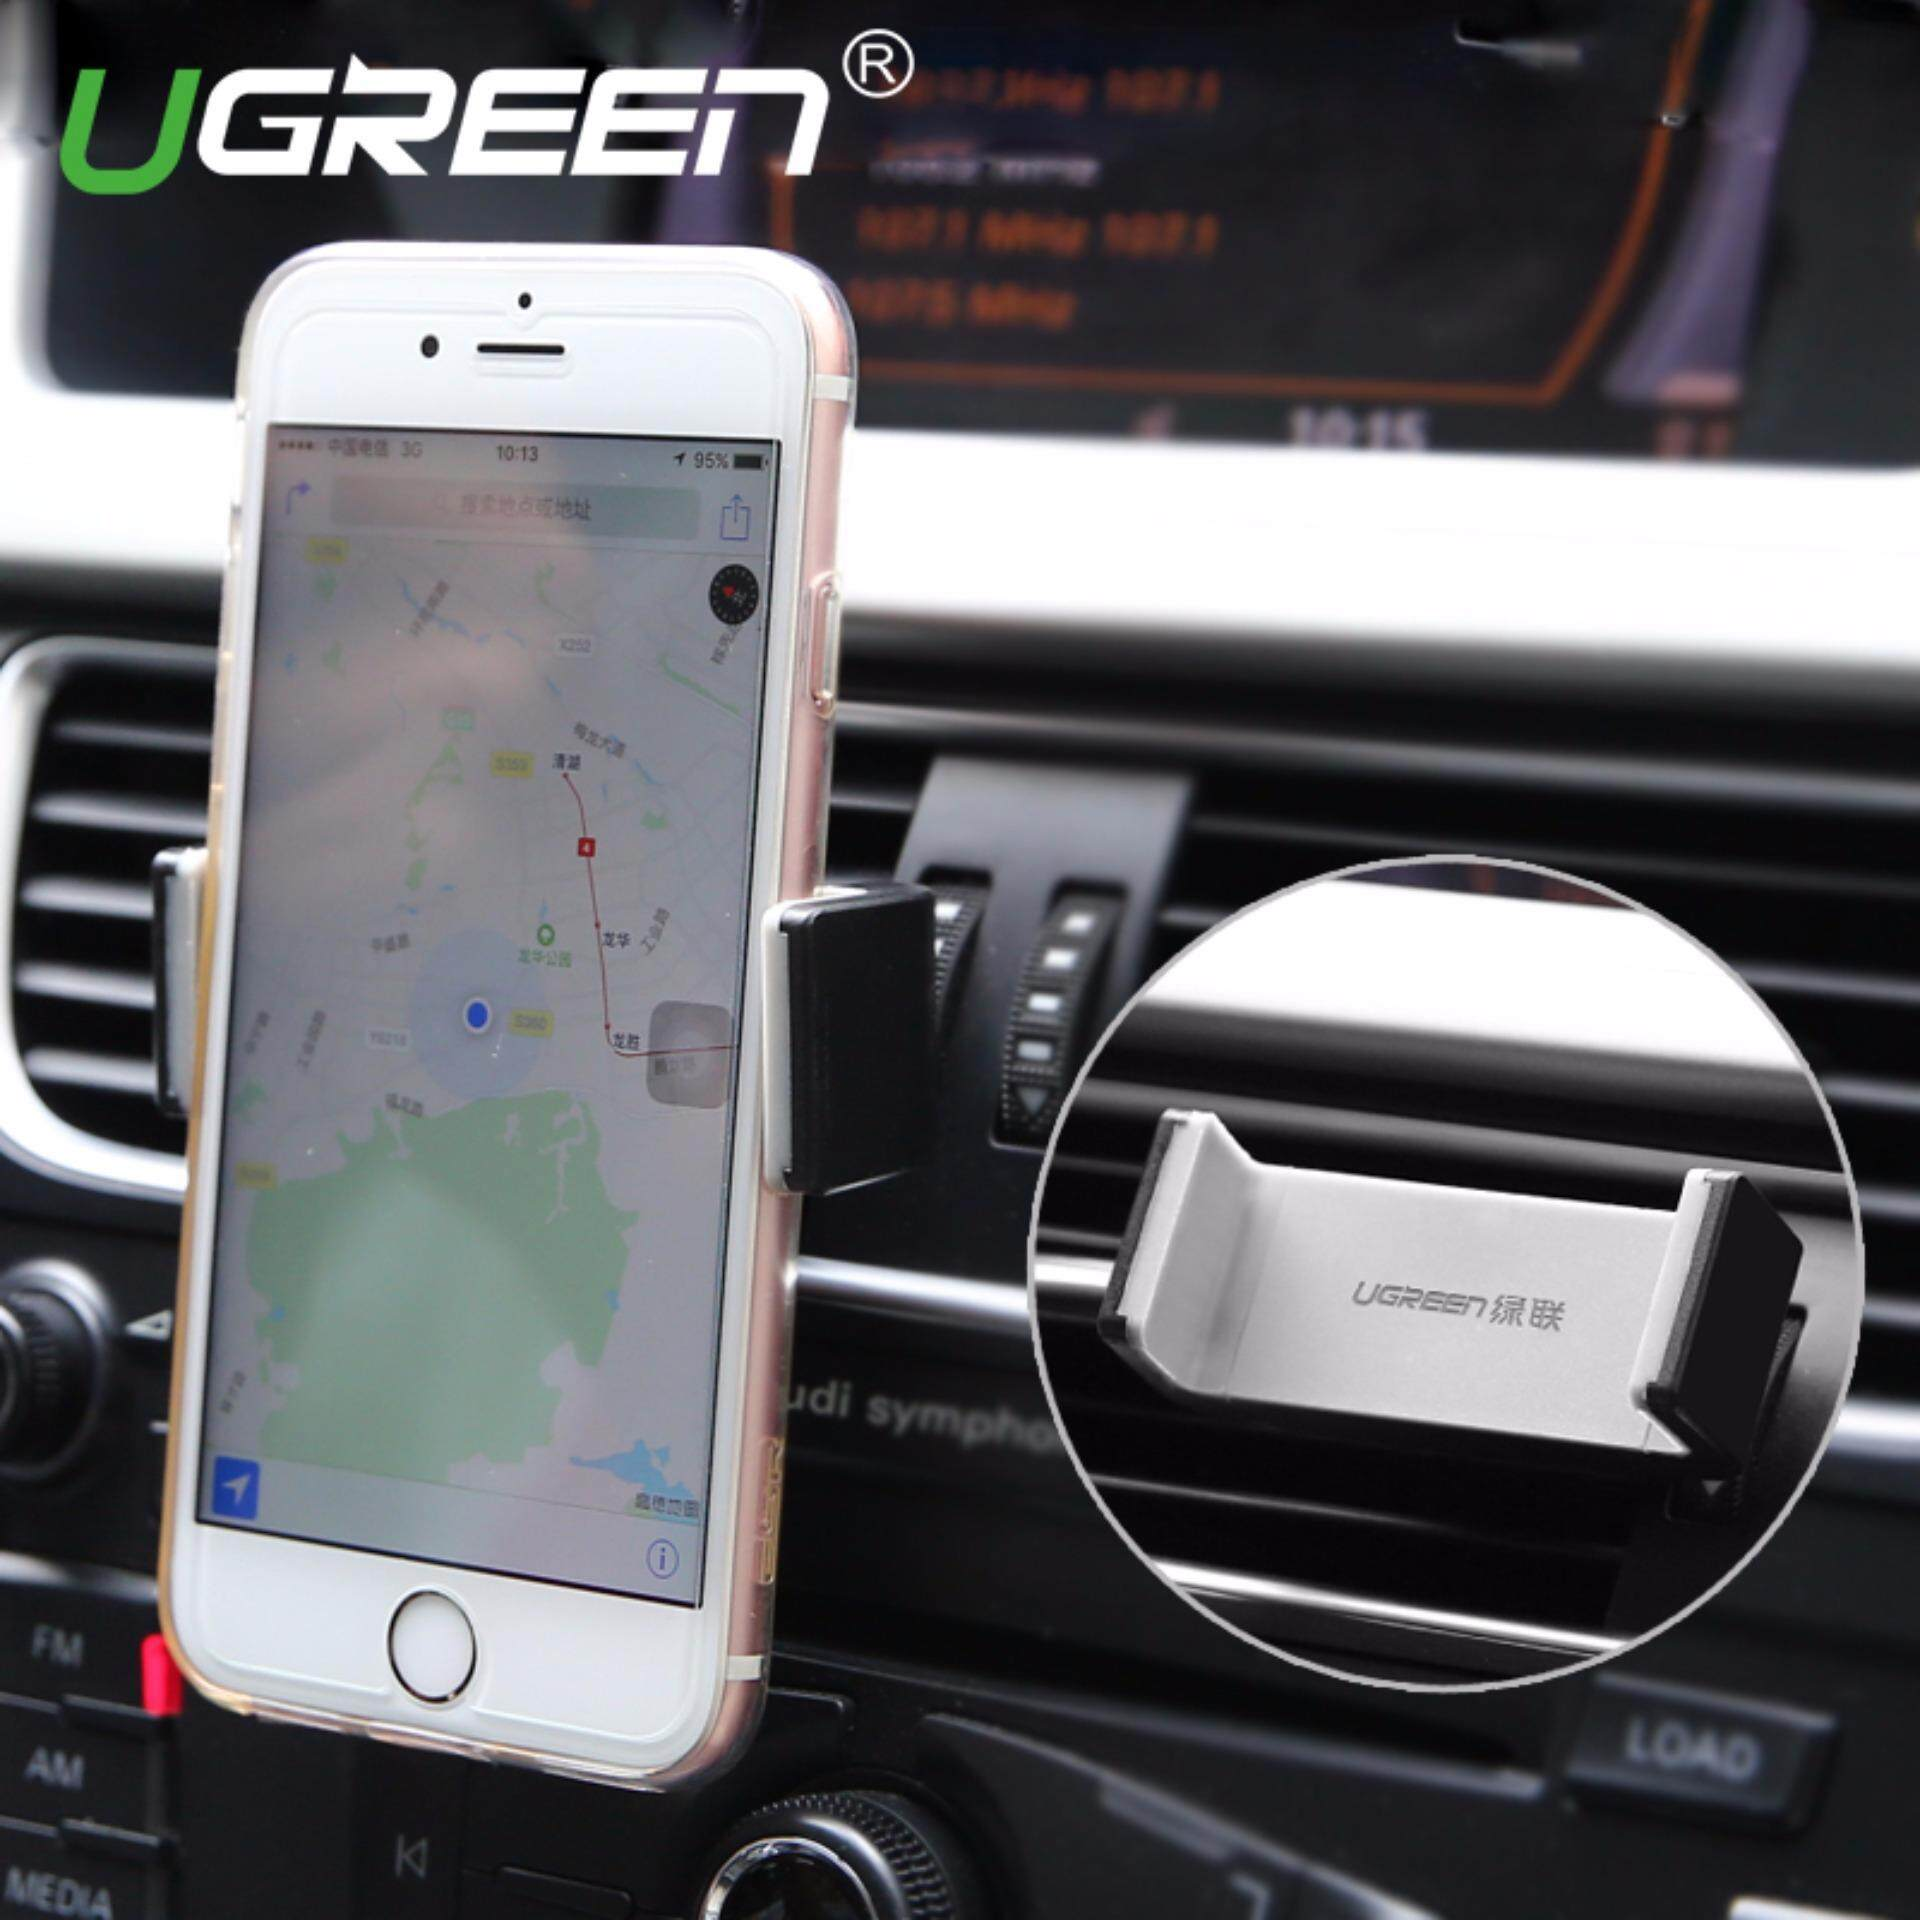 UGREEN Universal Mini Car Air Vent Mobile Phone Mount Holder Cradle for 3.5-6inch screen Mobile ...